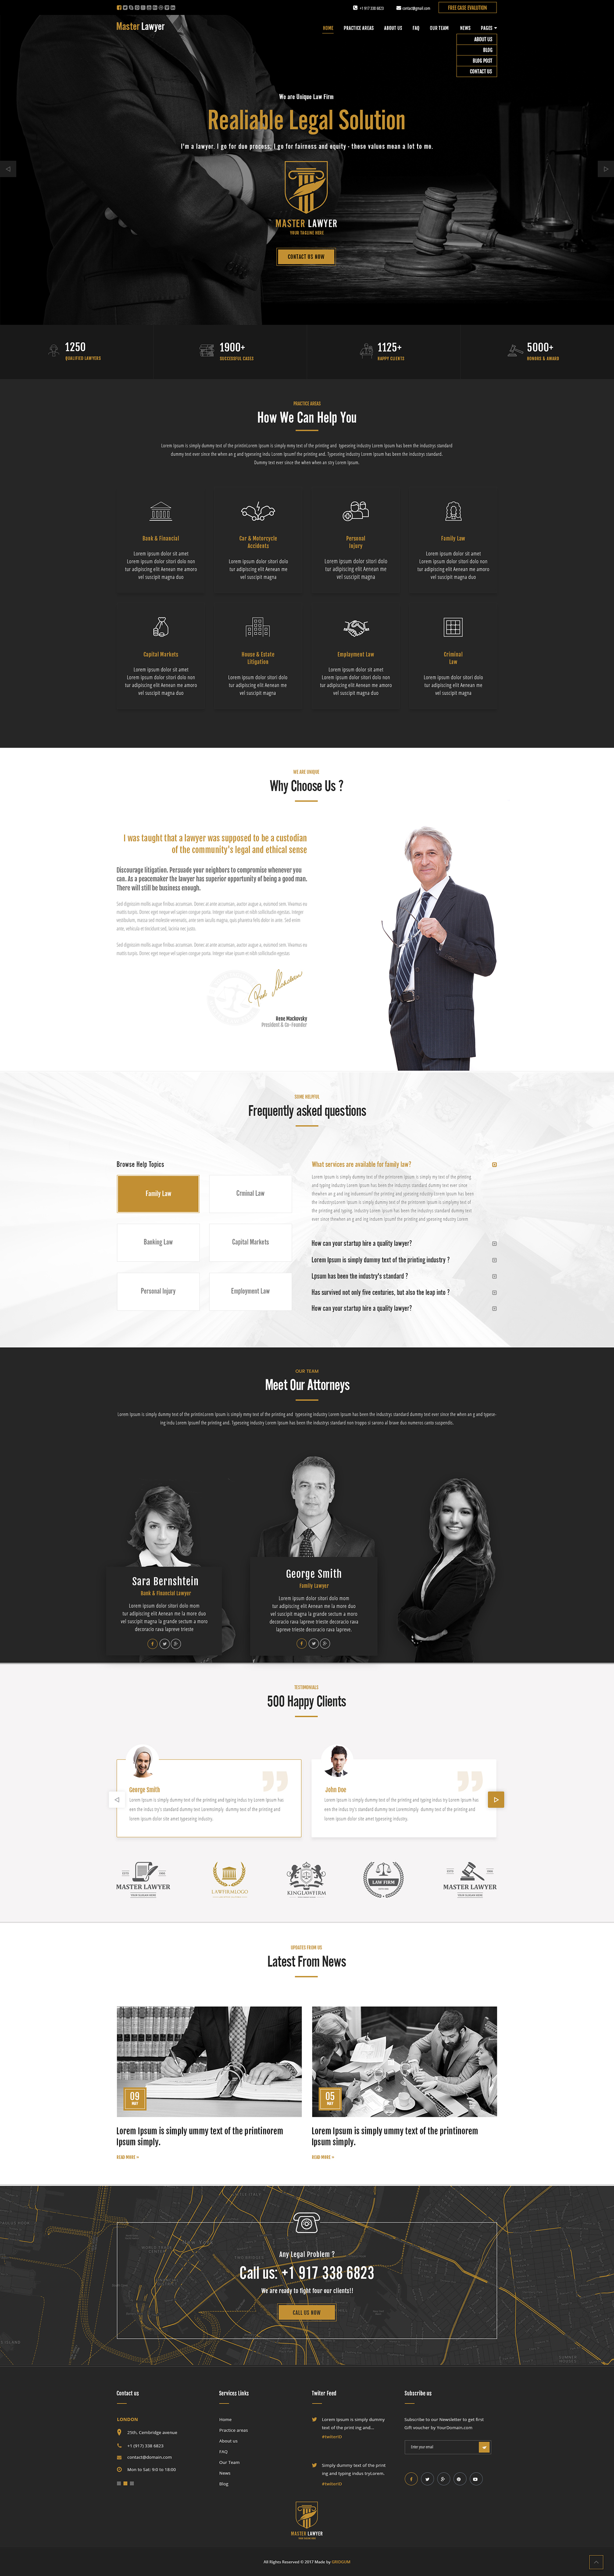 Master Lawyer bootstrap theme on Behance | Bootstrap Templates ...